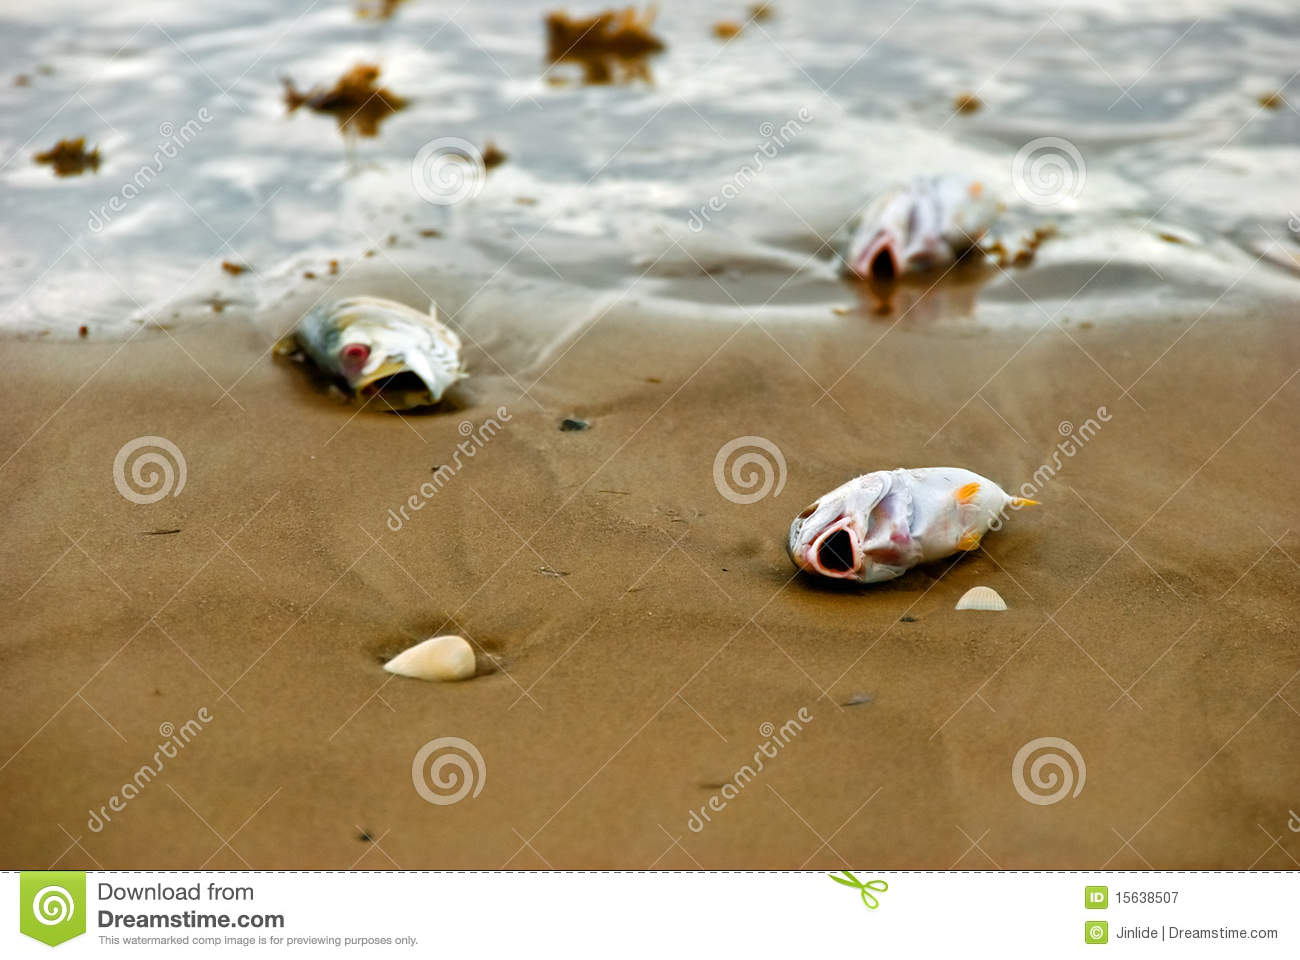 Fish out of water royalty free stock photography image for Dream about fish out of water